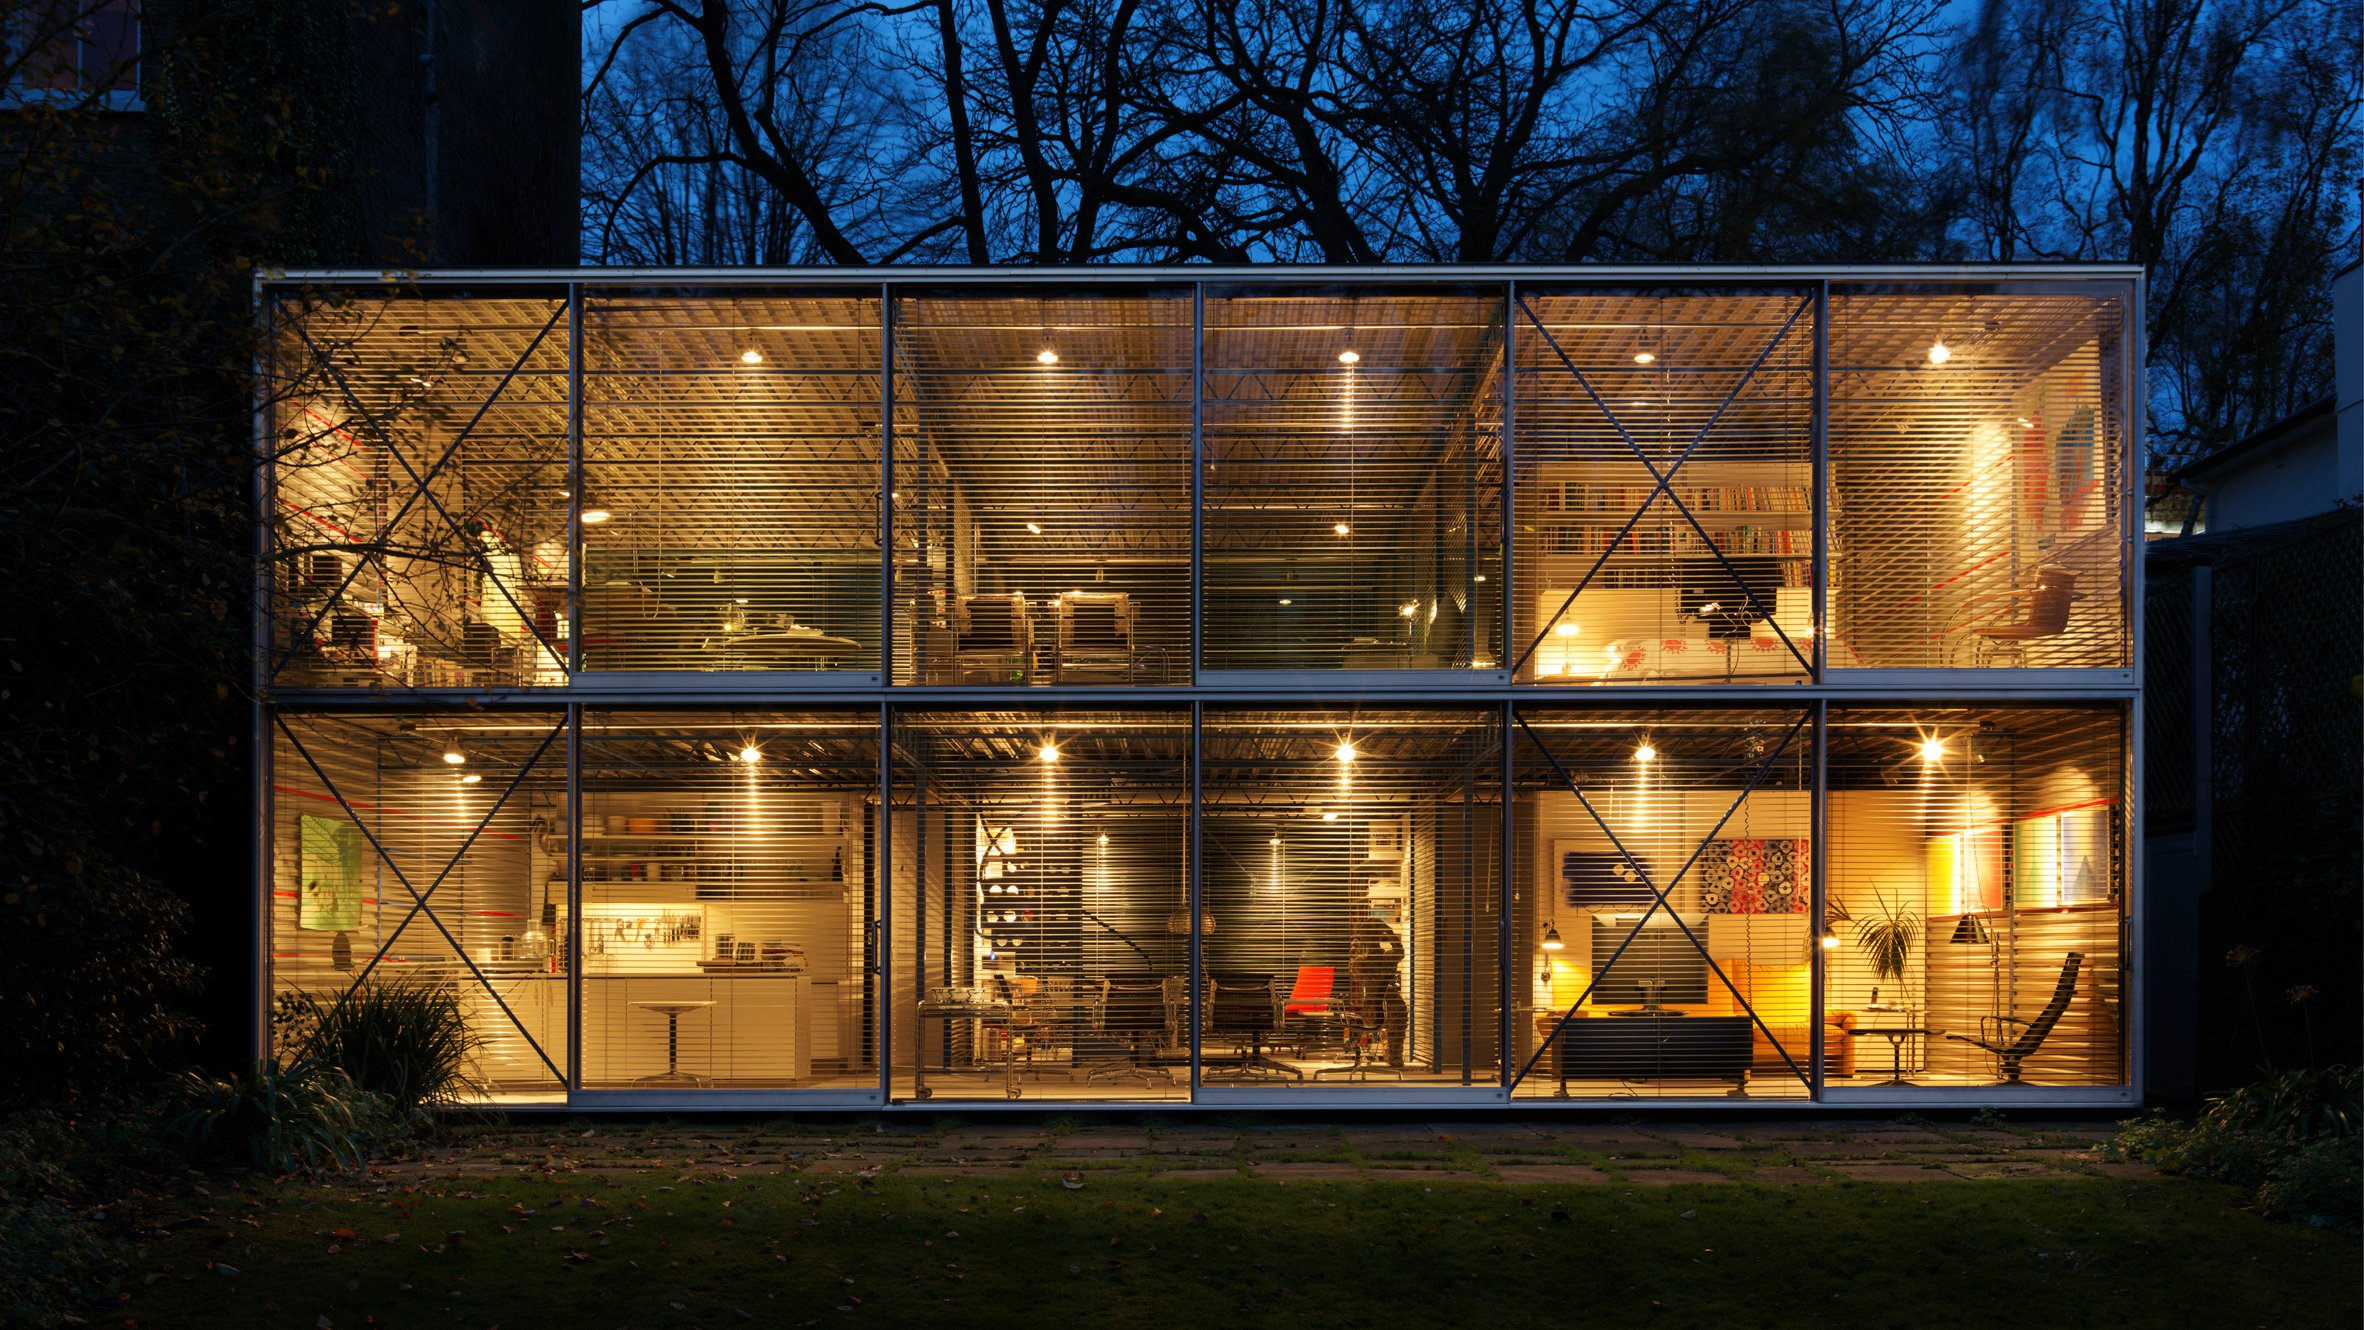 High-tech architecture: Michael and Patty Hopkins